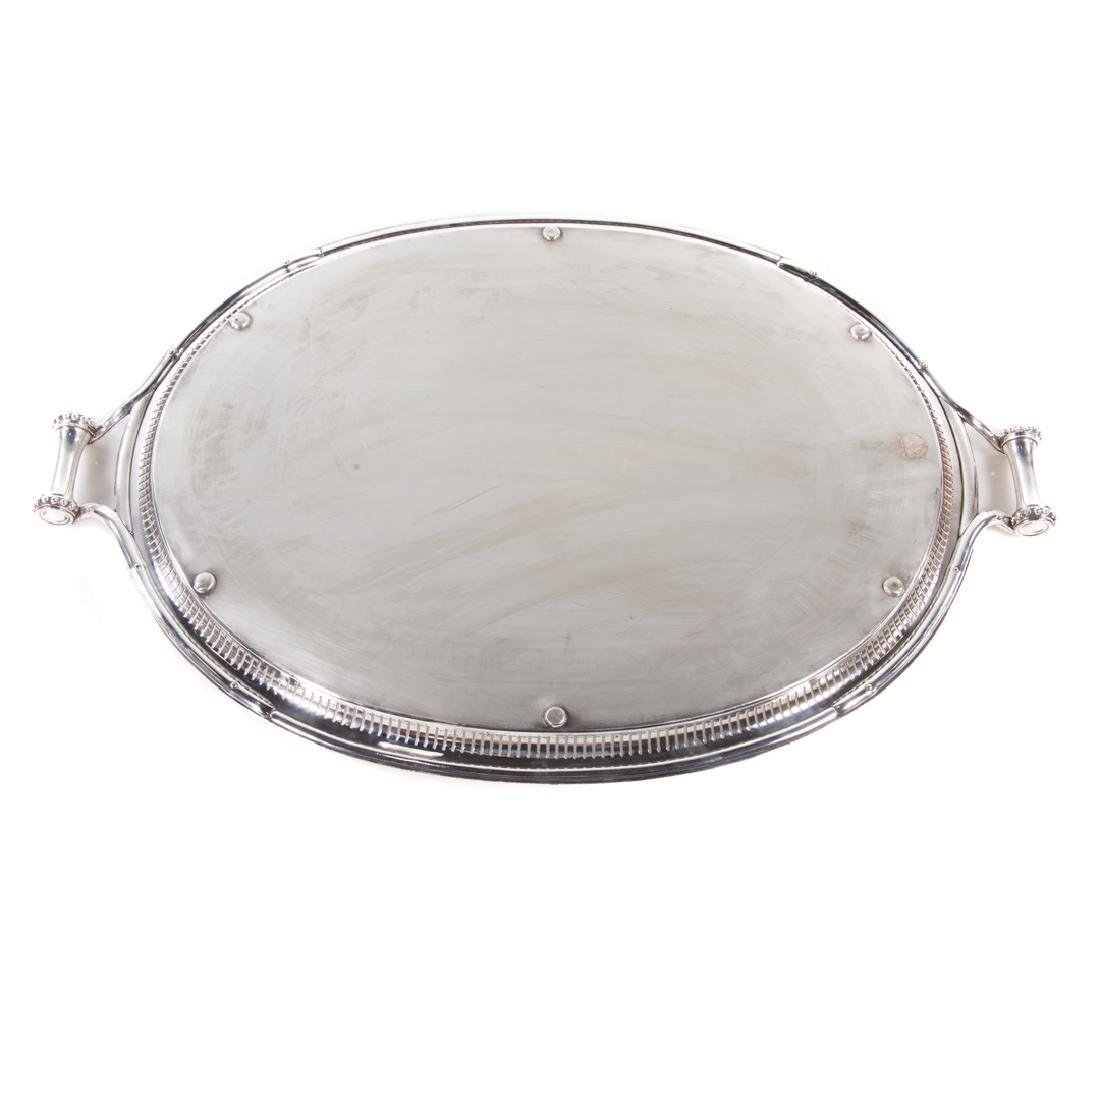 Sheffield plated butler's tray James Dixon & Sons - 6